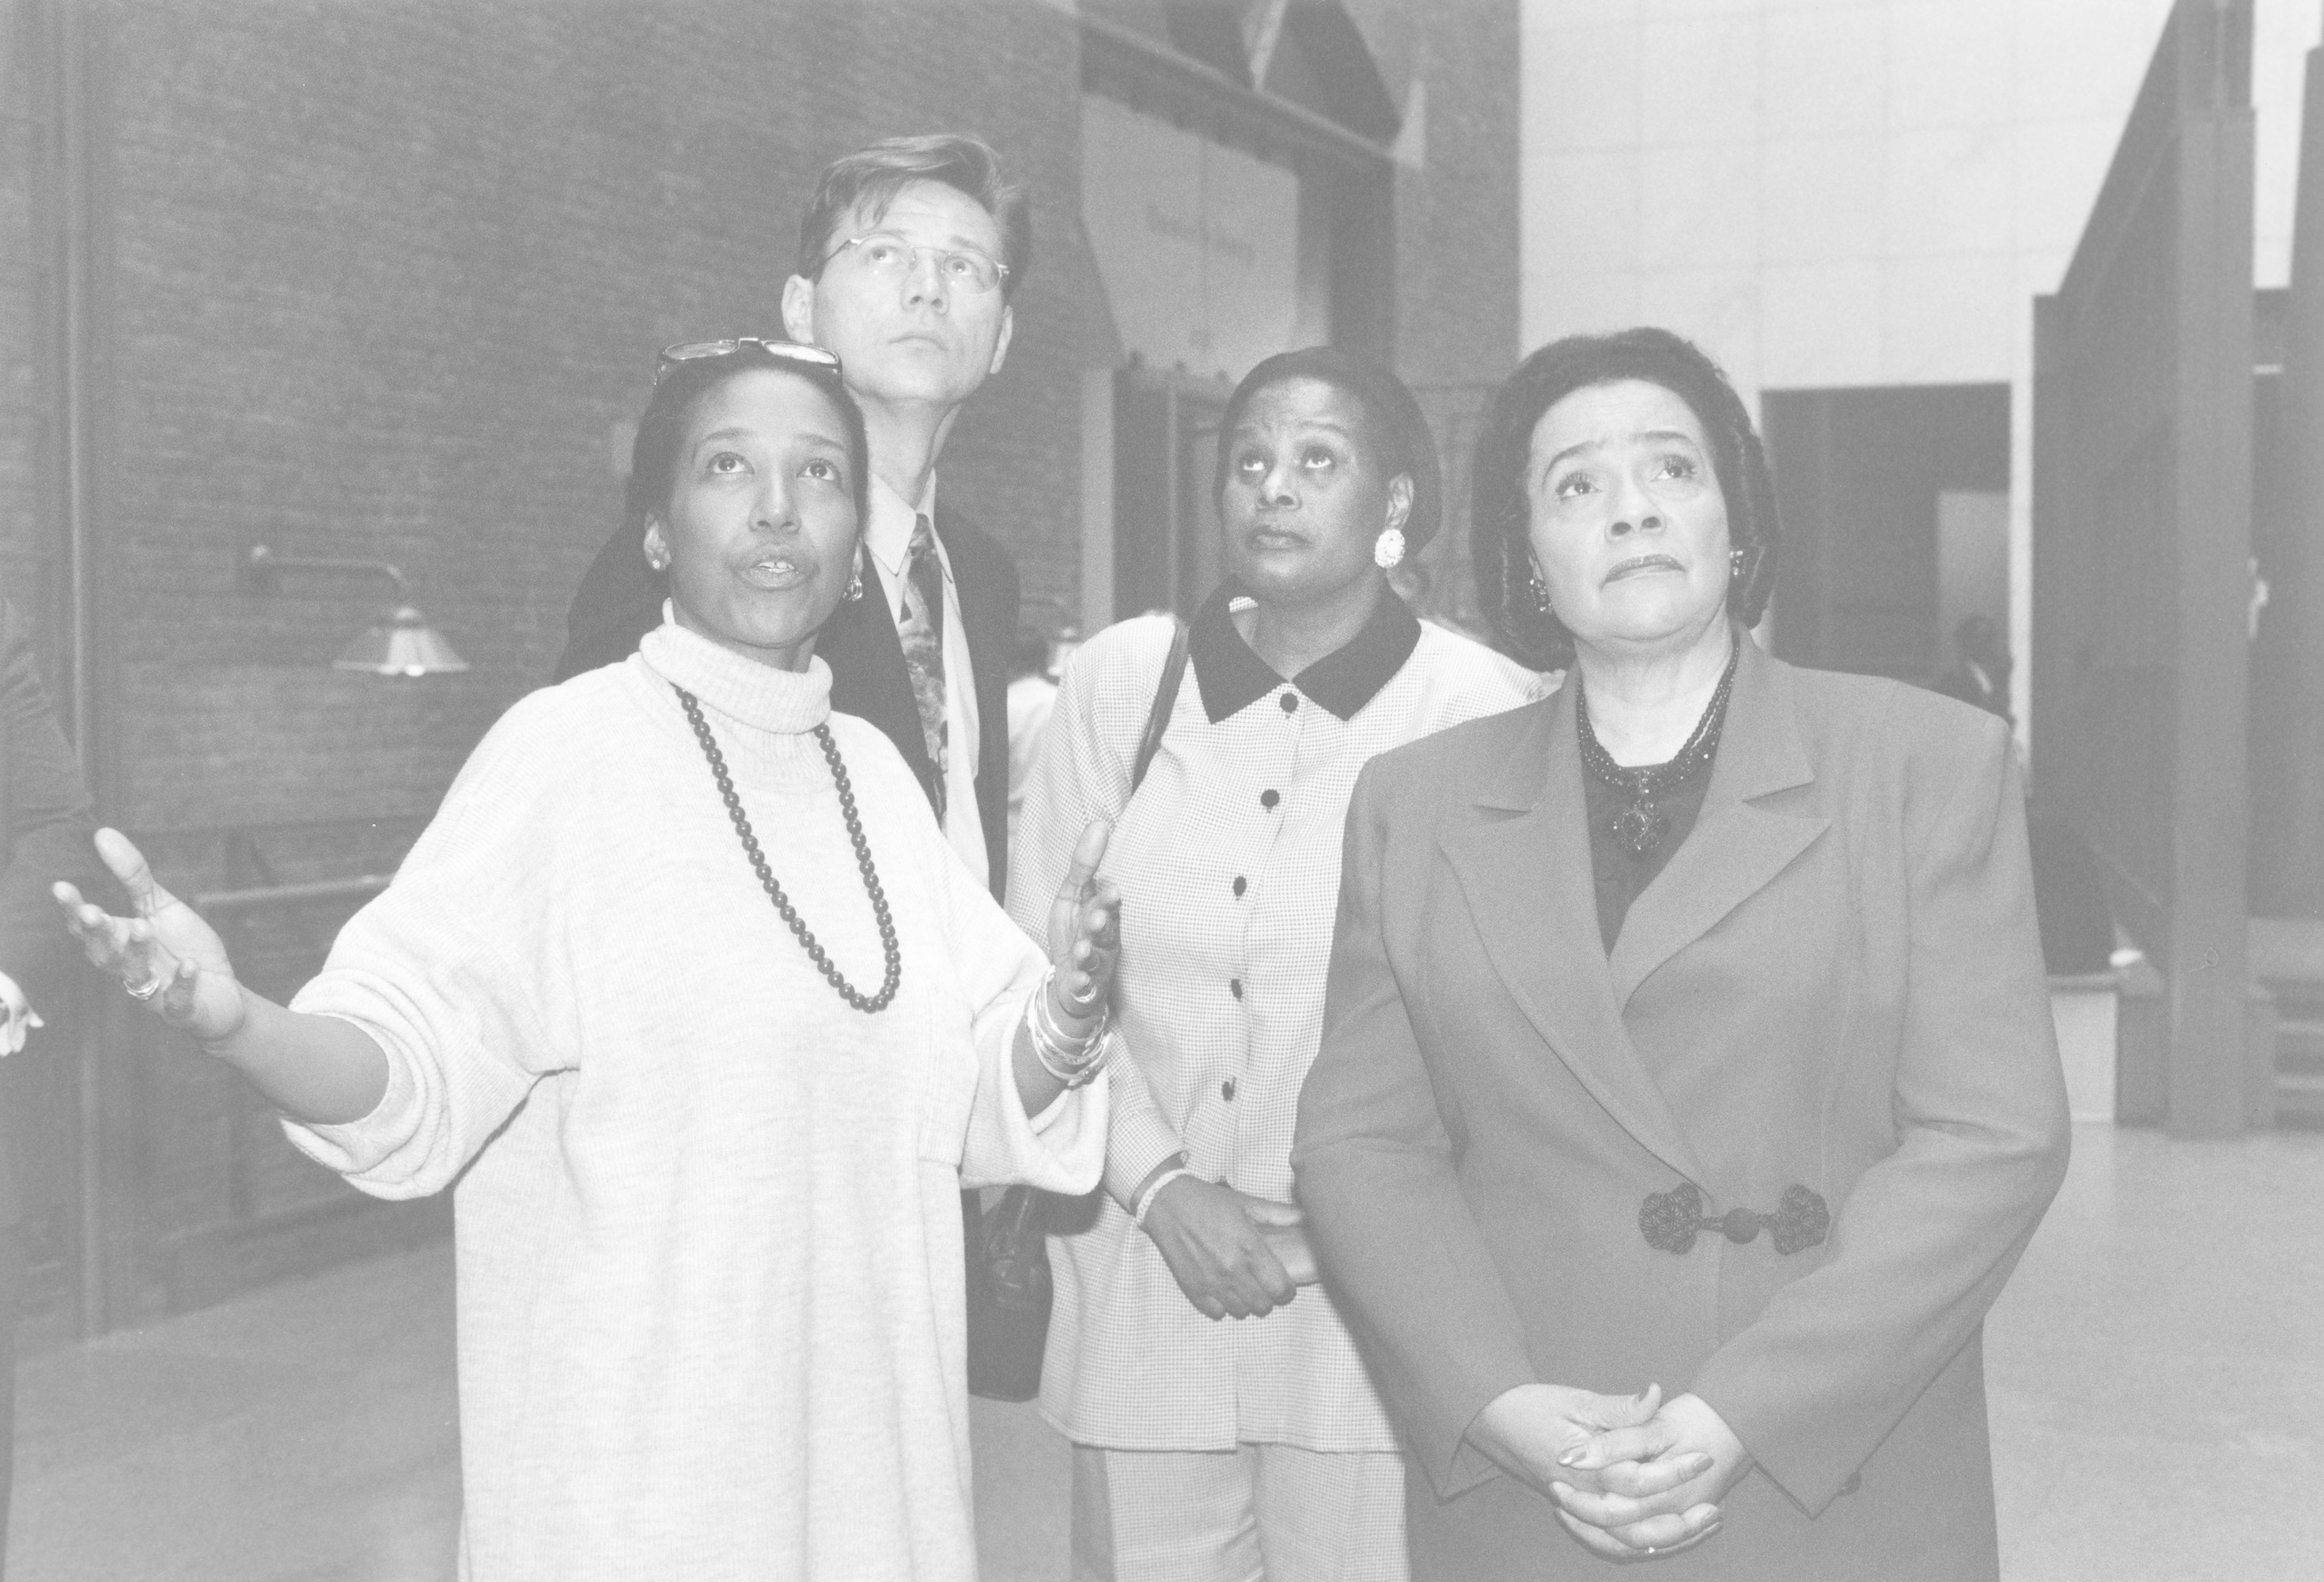 Coretta Scott King (right) views the Hall of Witness during a tour of the U.S. Holocaust Memorial Museum conducted by staff member Lynn Williams.